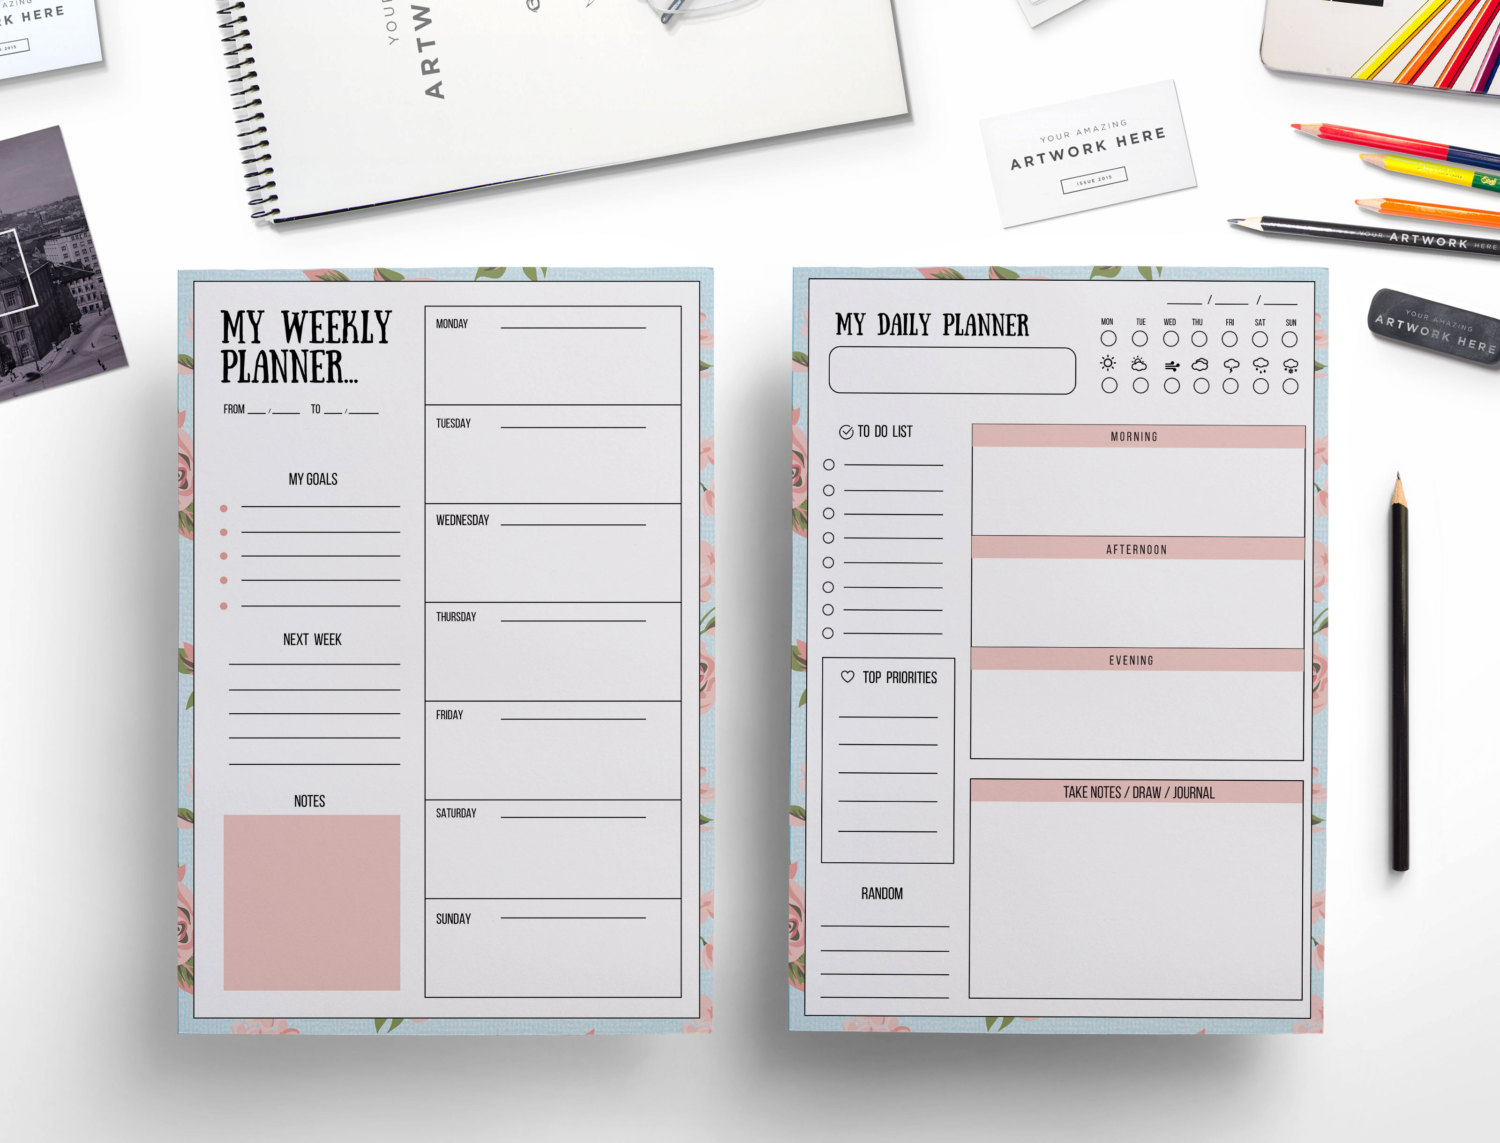 Daily planner Weekly planner floral background /